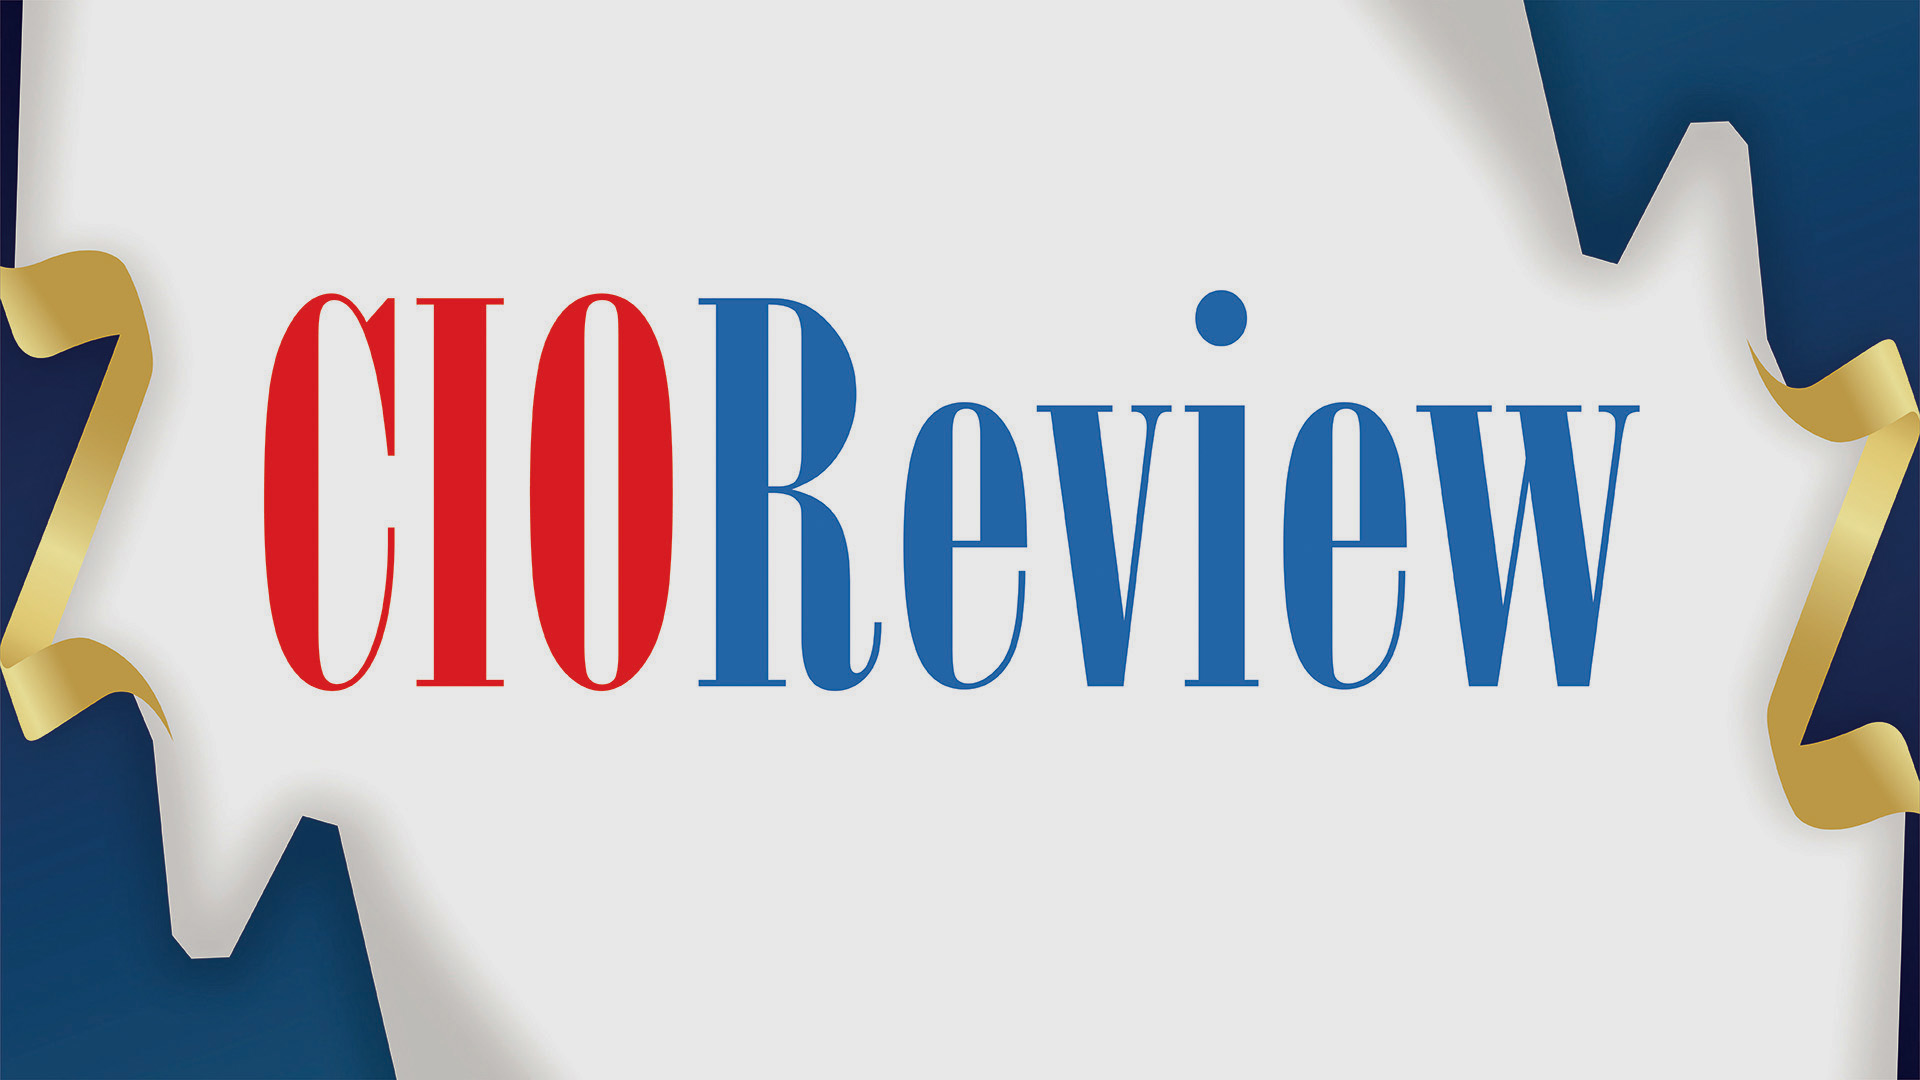 """Encompass Communications and Learning recognized by CIOReview as a """"Most Promising Gamification Service Company"""""""